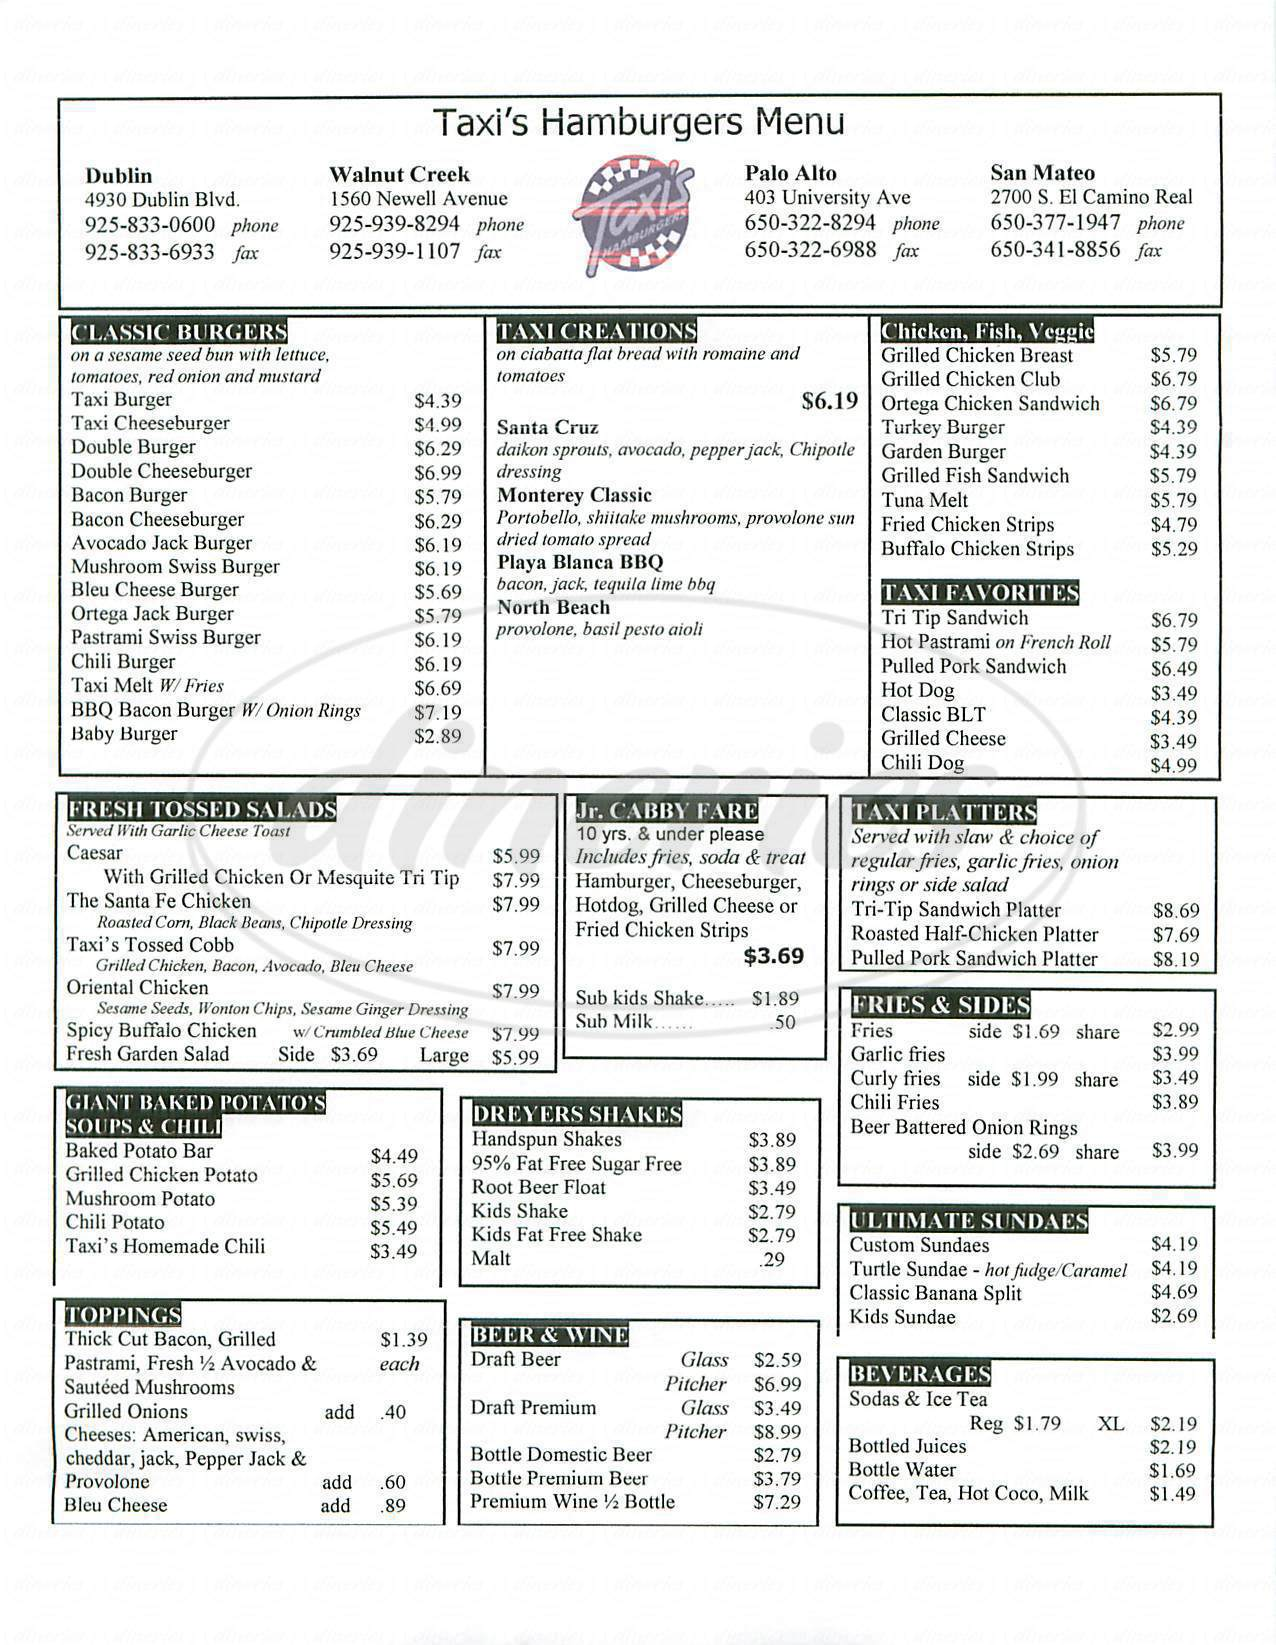 menu for Taxis Hamburgers